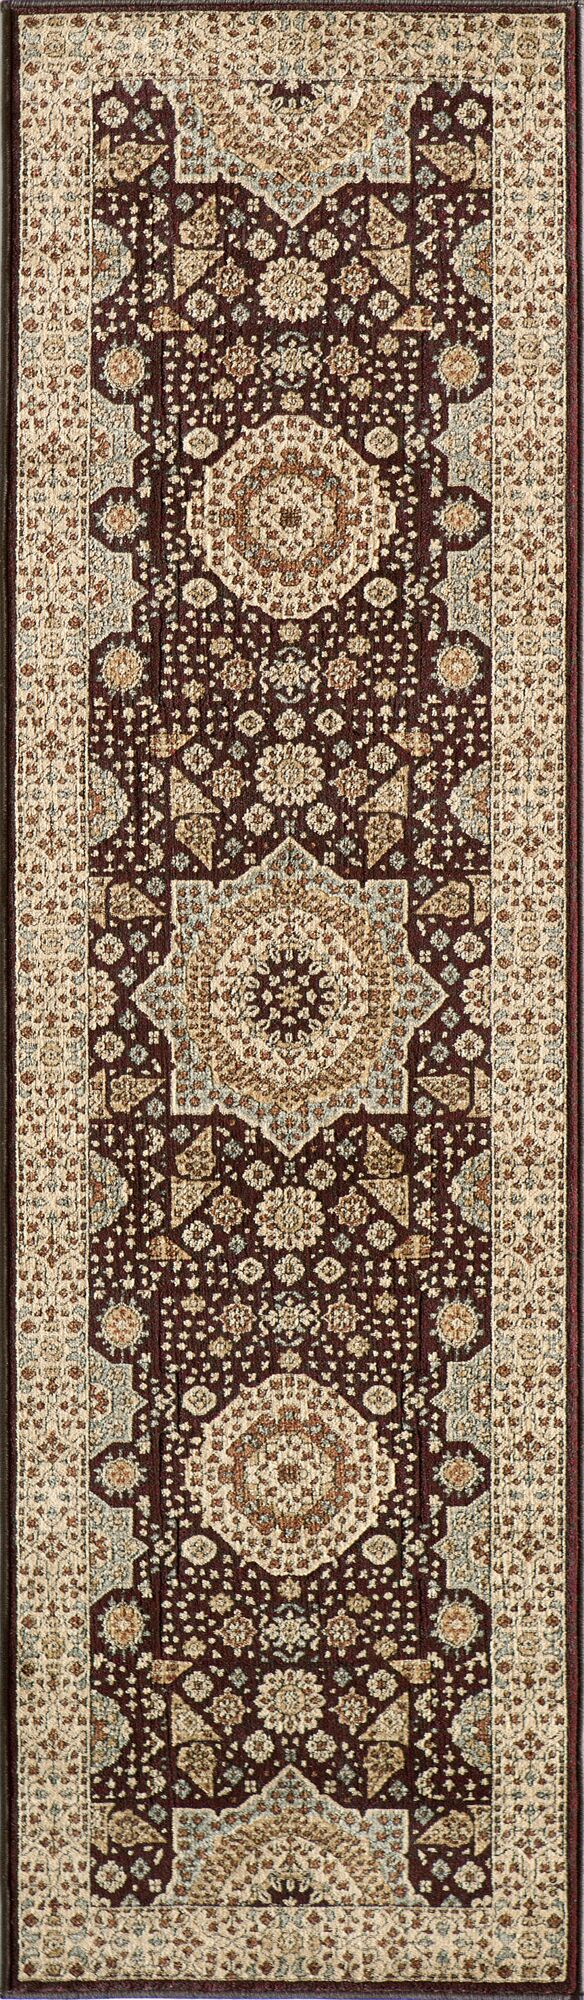 Crescent Brown Area Rug Rug Size: Rectangle 3'11